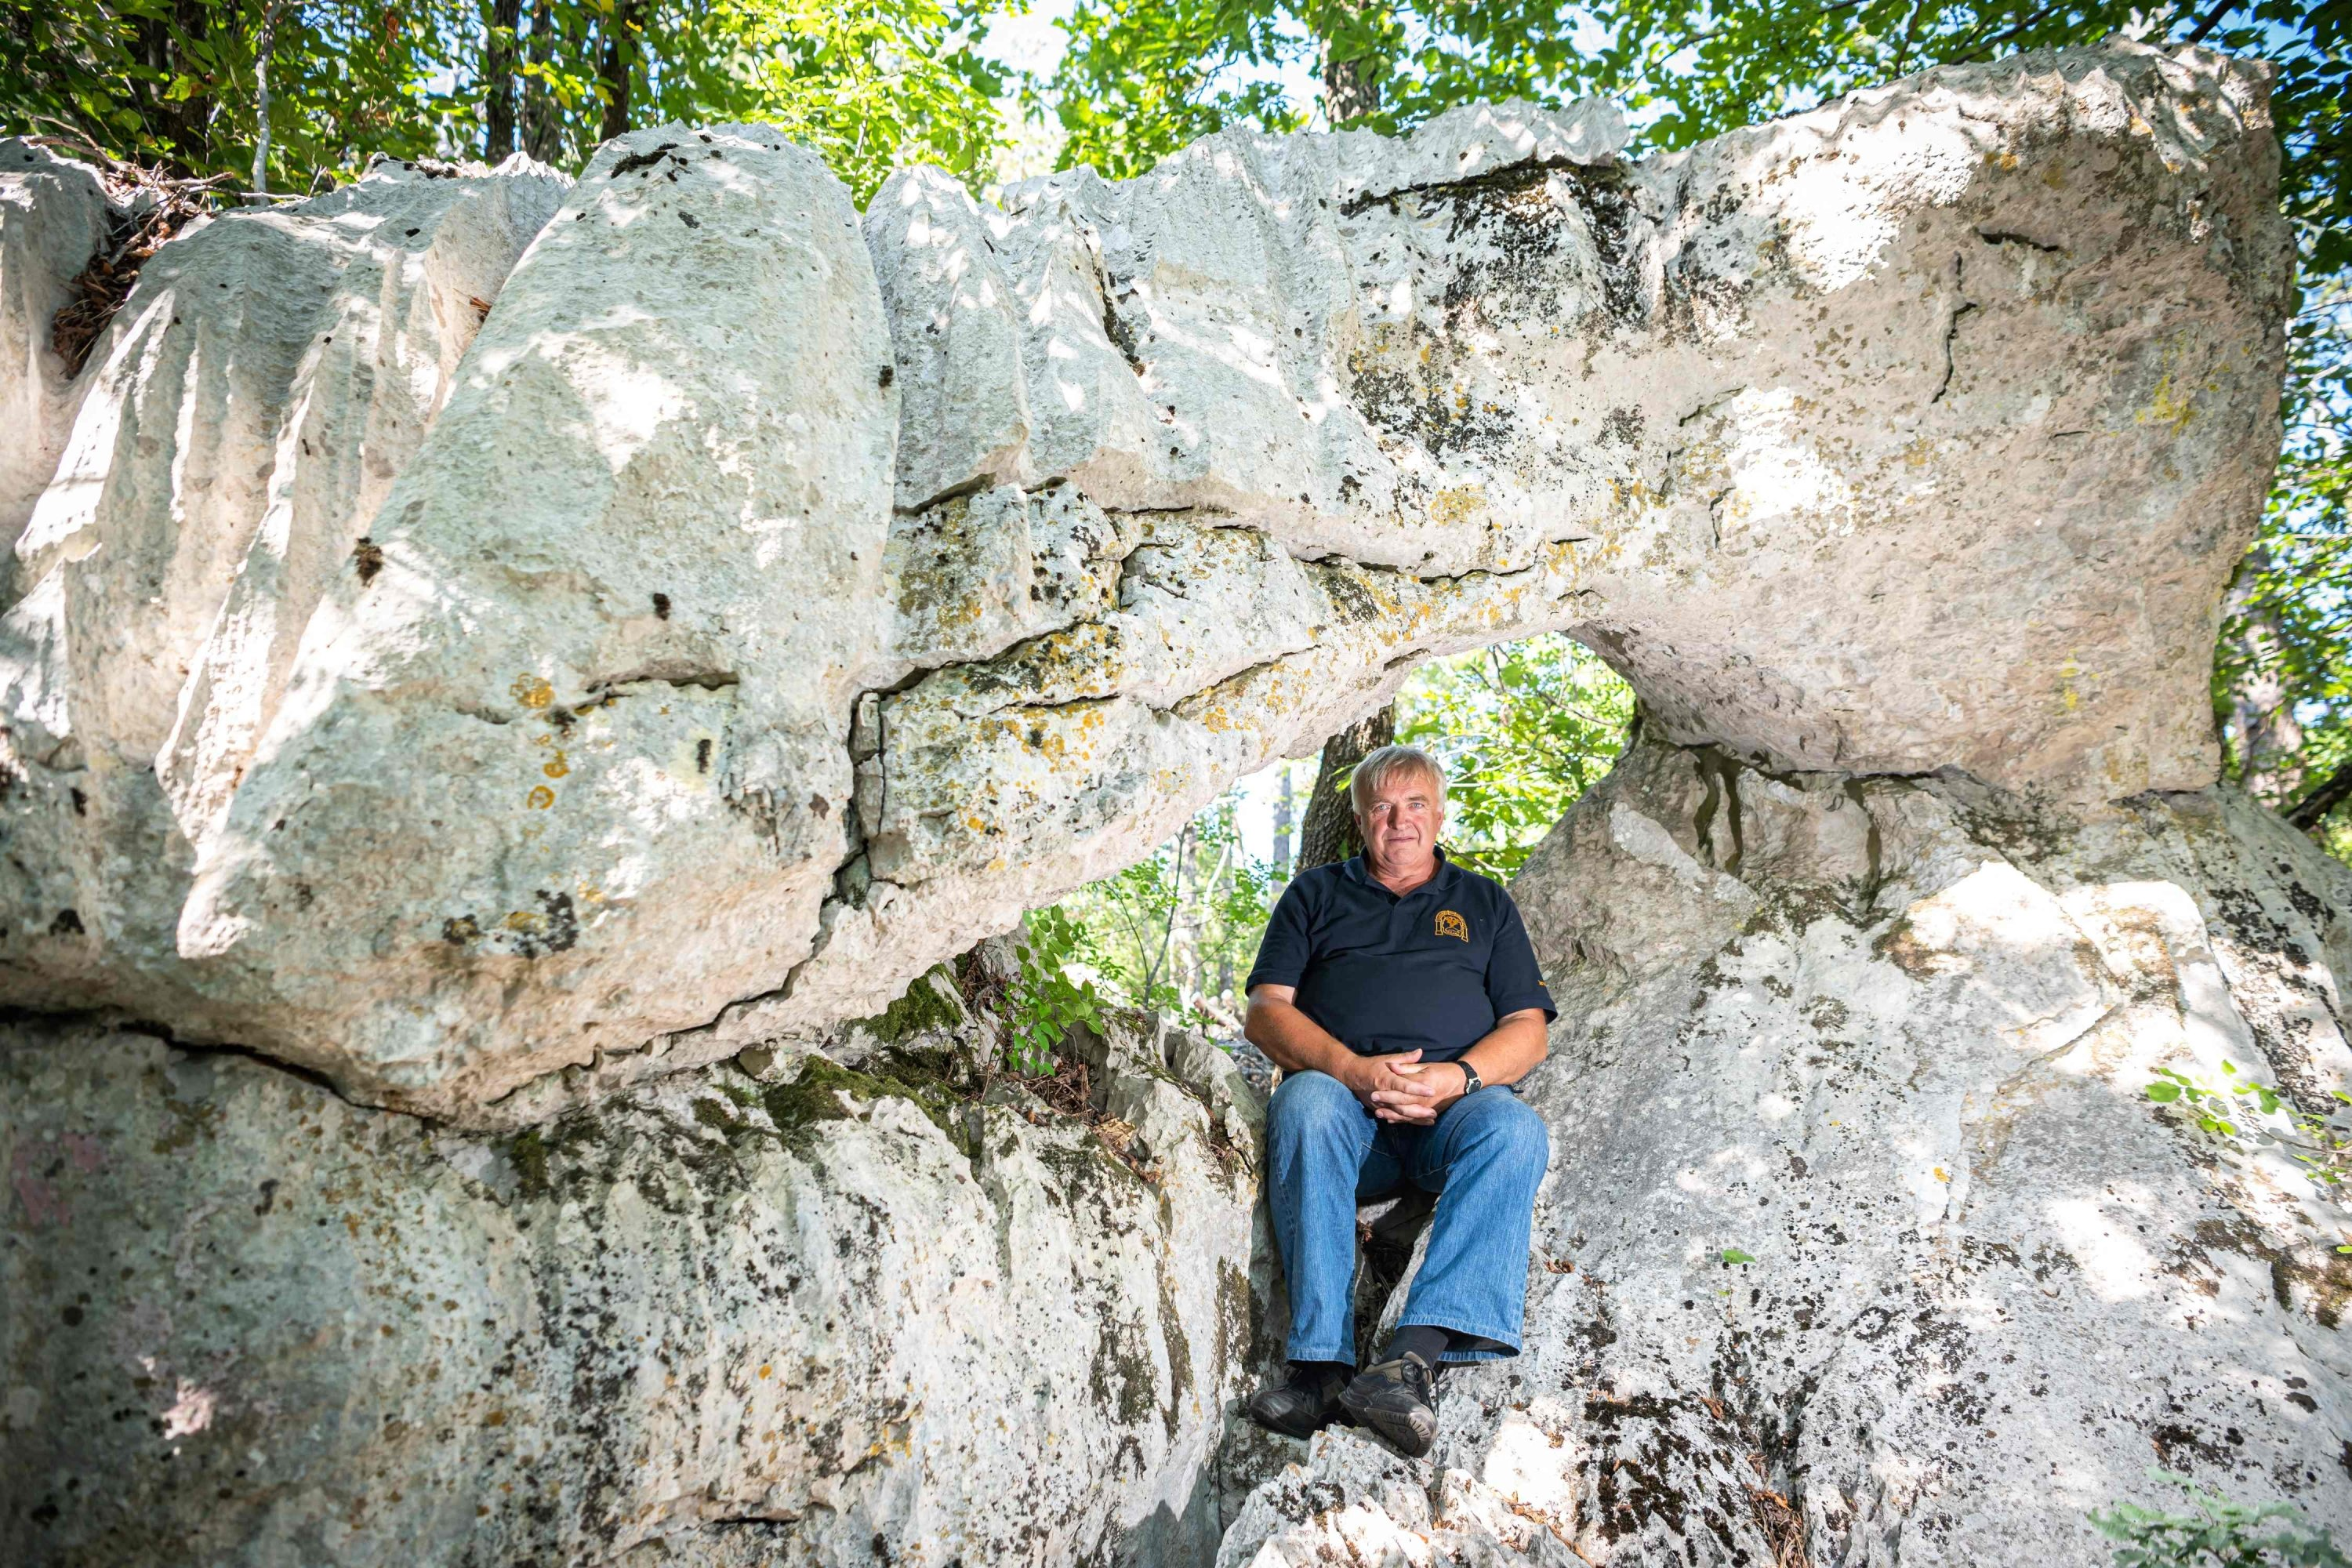 Caver Ludvik Husu, who uncovered several caves in the Karst area, poses near Sezana, Slovenia, Aug. 7, 2021. (AFP Photo)